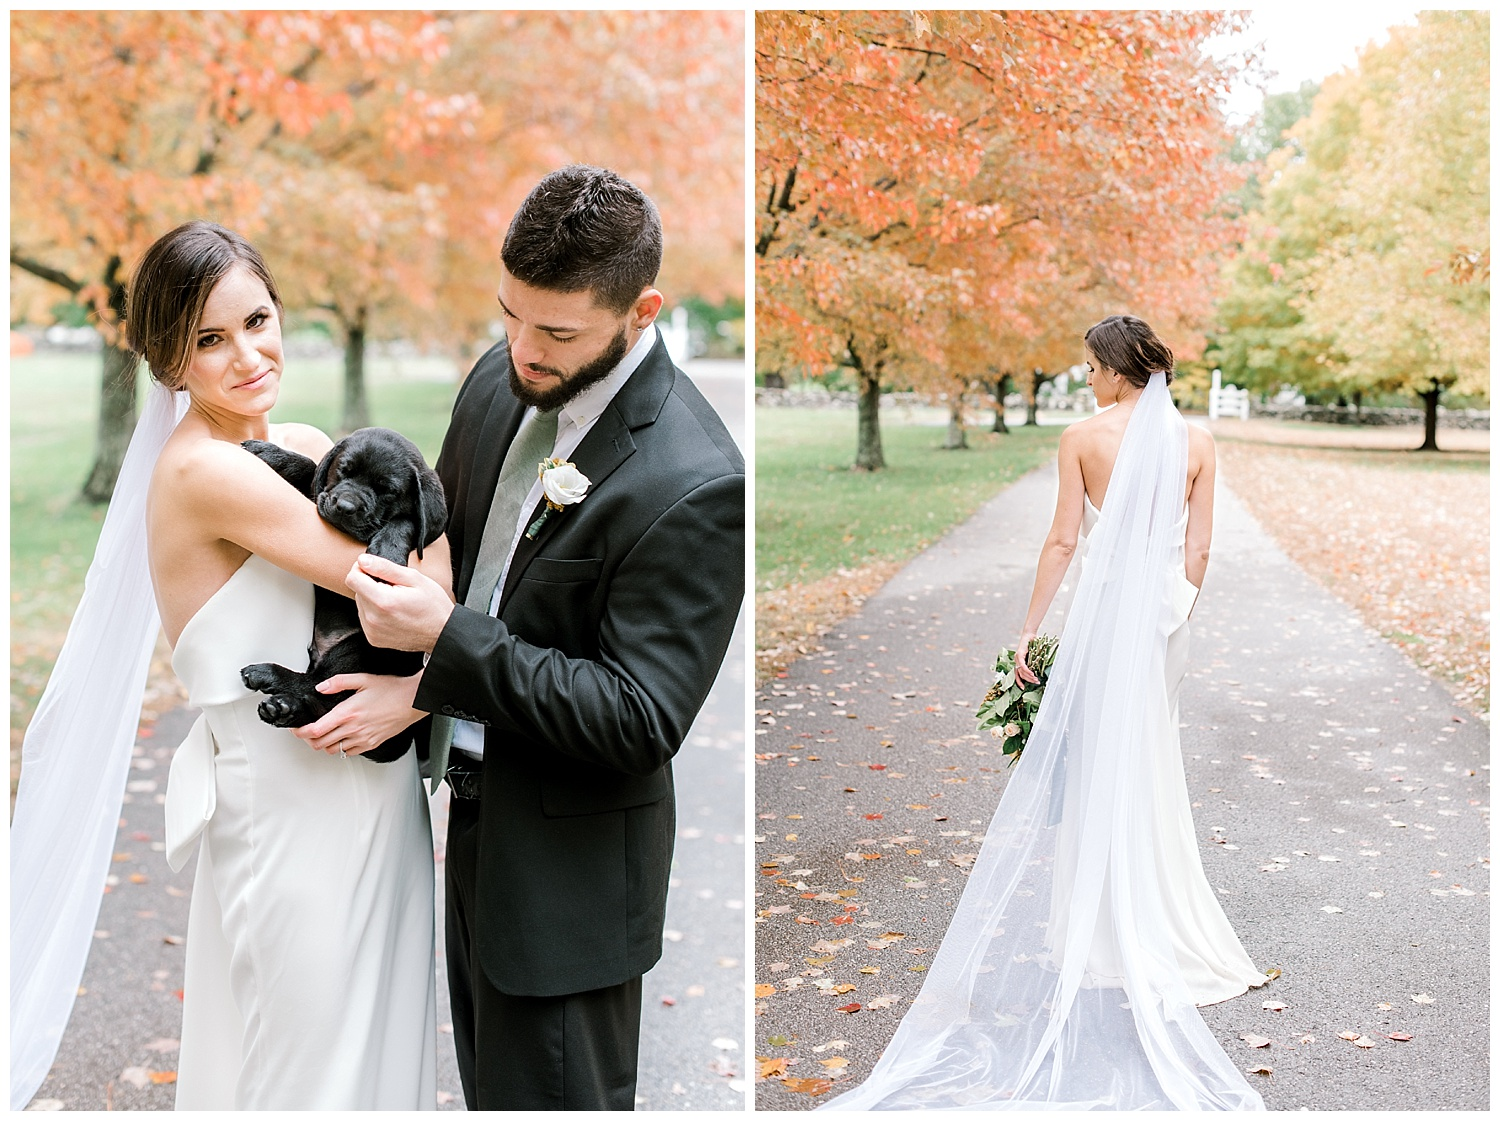 pompositticut-farm-fall-wedding-photography-hudson-massachusetts-photo-21.jpg